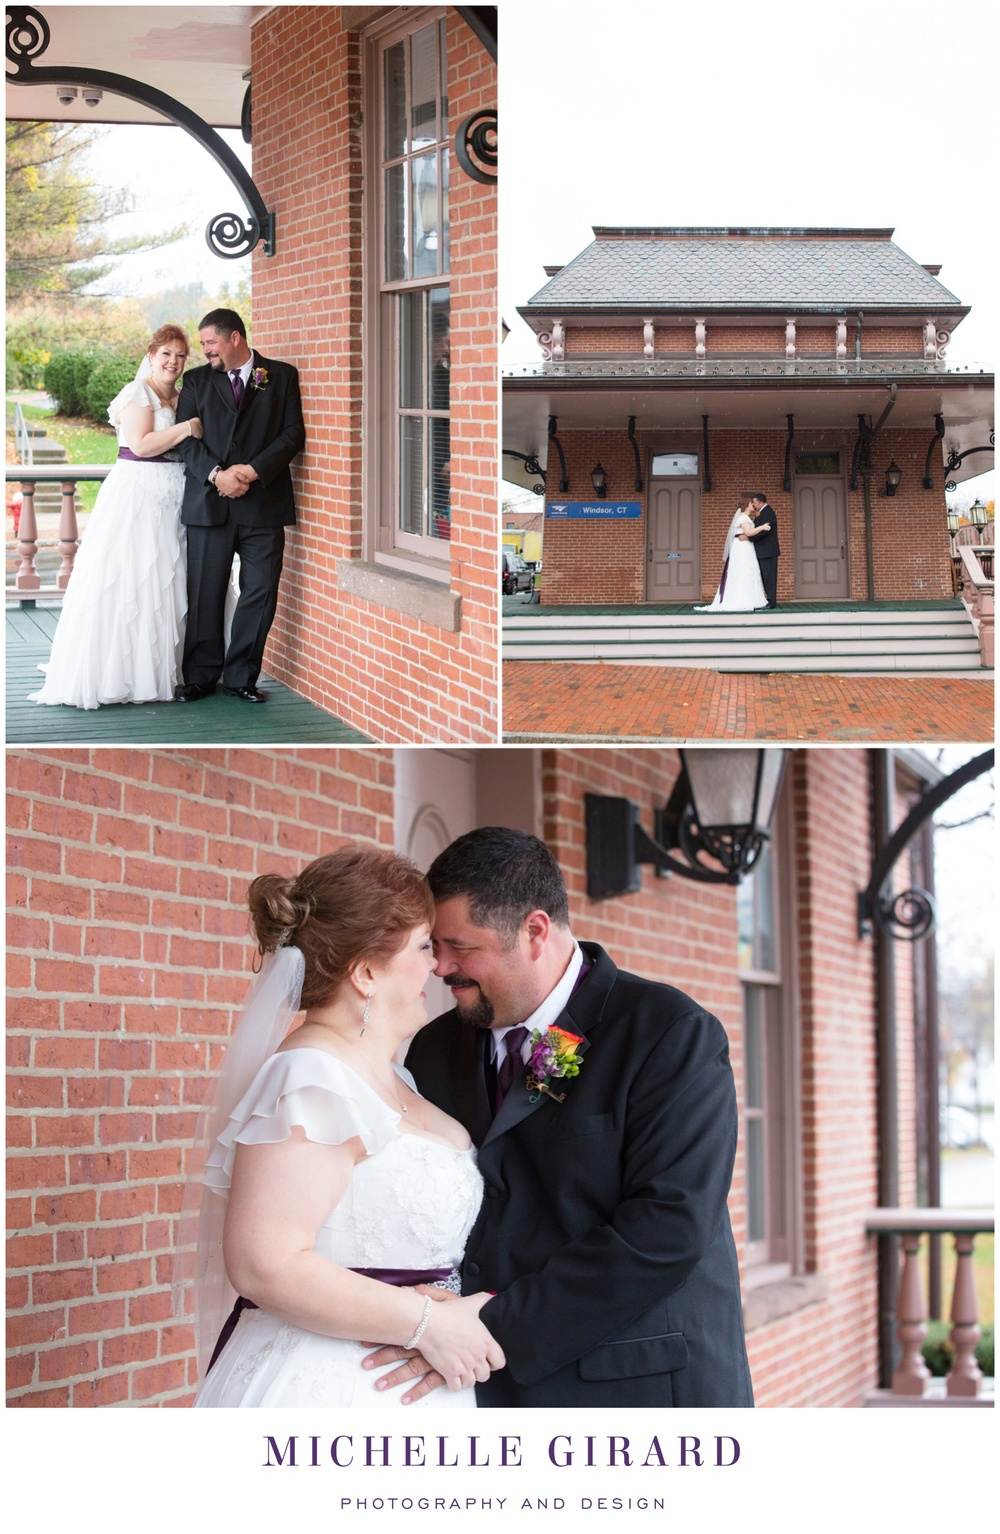 WindsorTrainStationWeddingFirstLook_MichelleGirardPhotography003.jpg